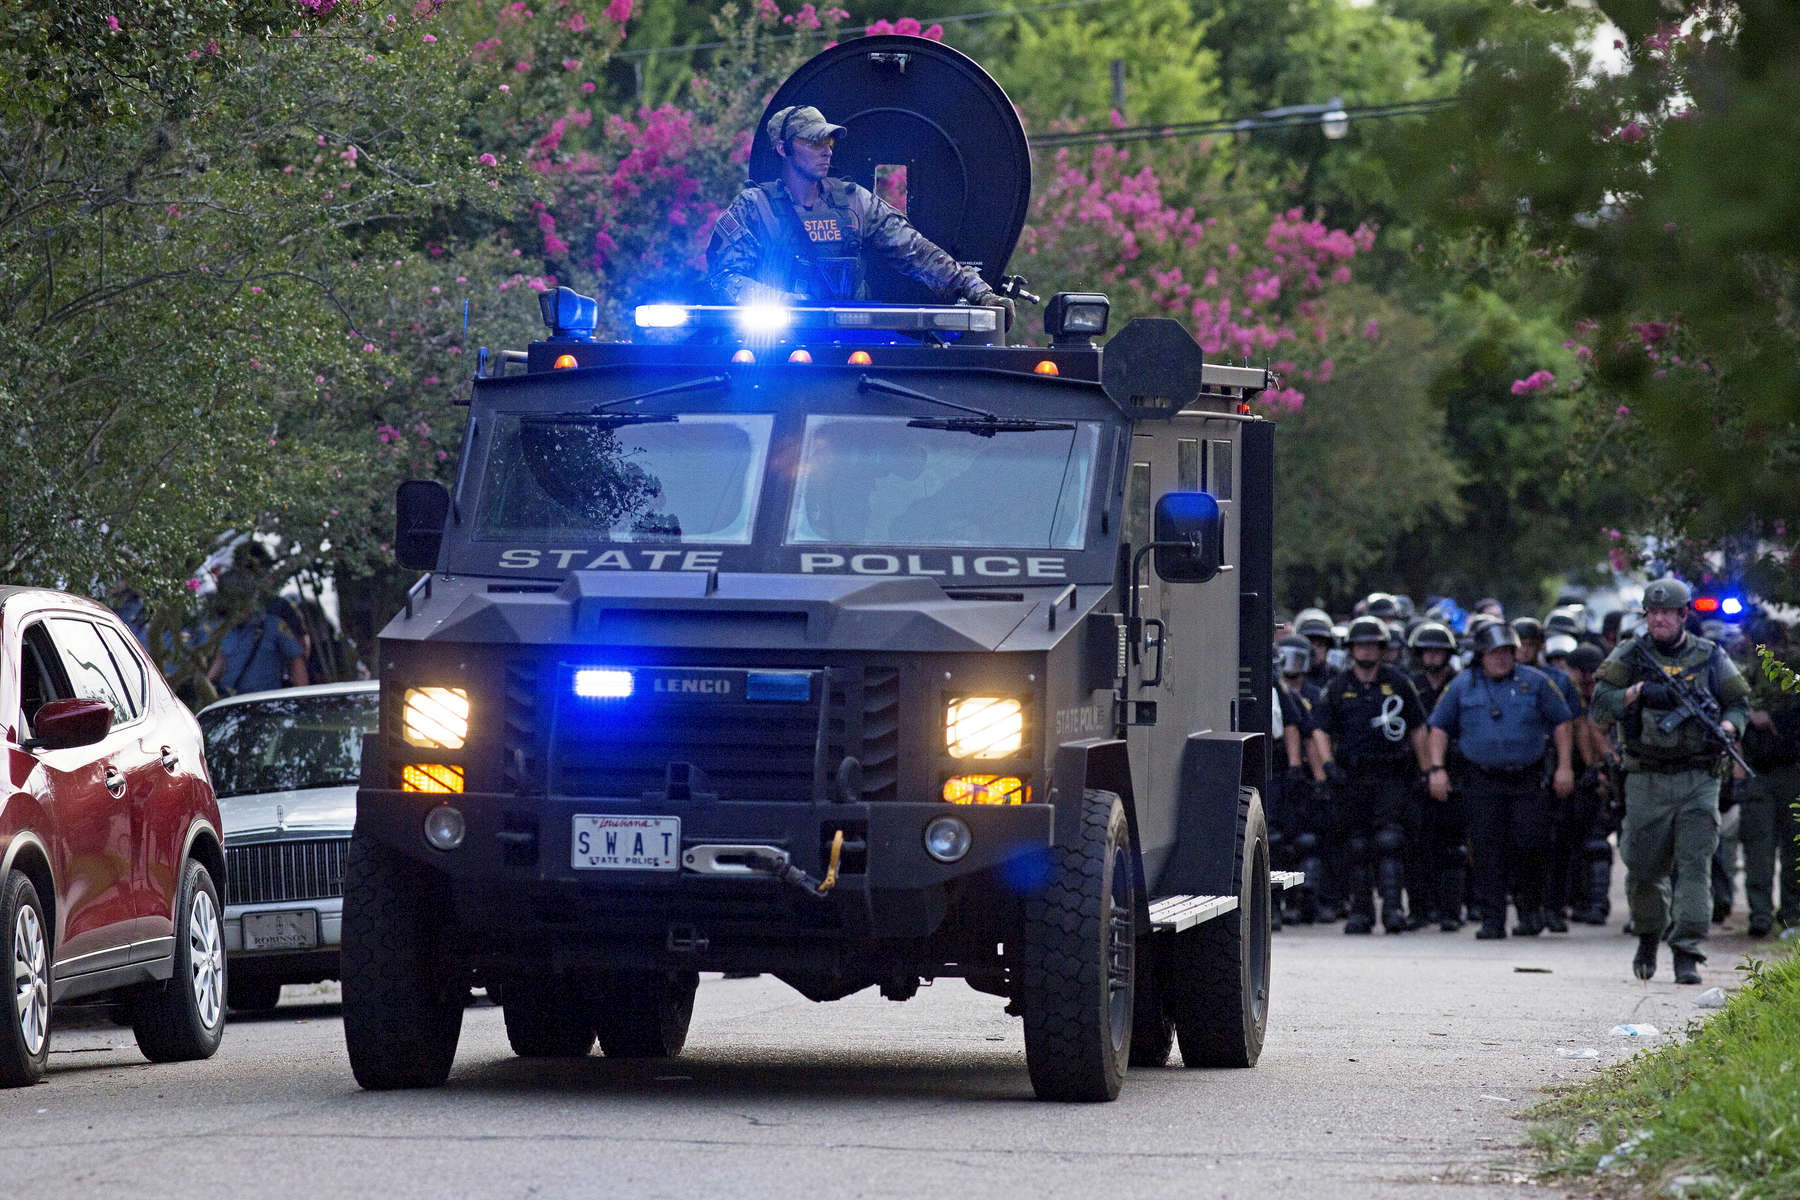 An armored police truck leads a troop of police through a residential neighborhood near a major highway  after clearing protestors from the area in Baton Rouge, La. USA, on Sunday, July 10, 2016. Some 30 to 40 people were taken into custody for trying to block a highway, sheriff's spokeswoman Casey Rayborn Hicks said. Louisiana Gov. John Bel Edwards said he doesn't believe officers have been overly aggressive by using riot gear to push protesters off a highway. {quote}The police tactics in response have been very moderate. I'm very proud of that,{quote} said Edwards (AP Photo/Max Becherer)